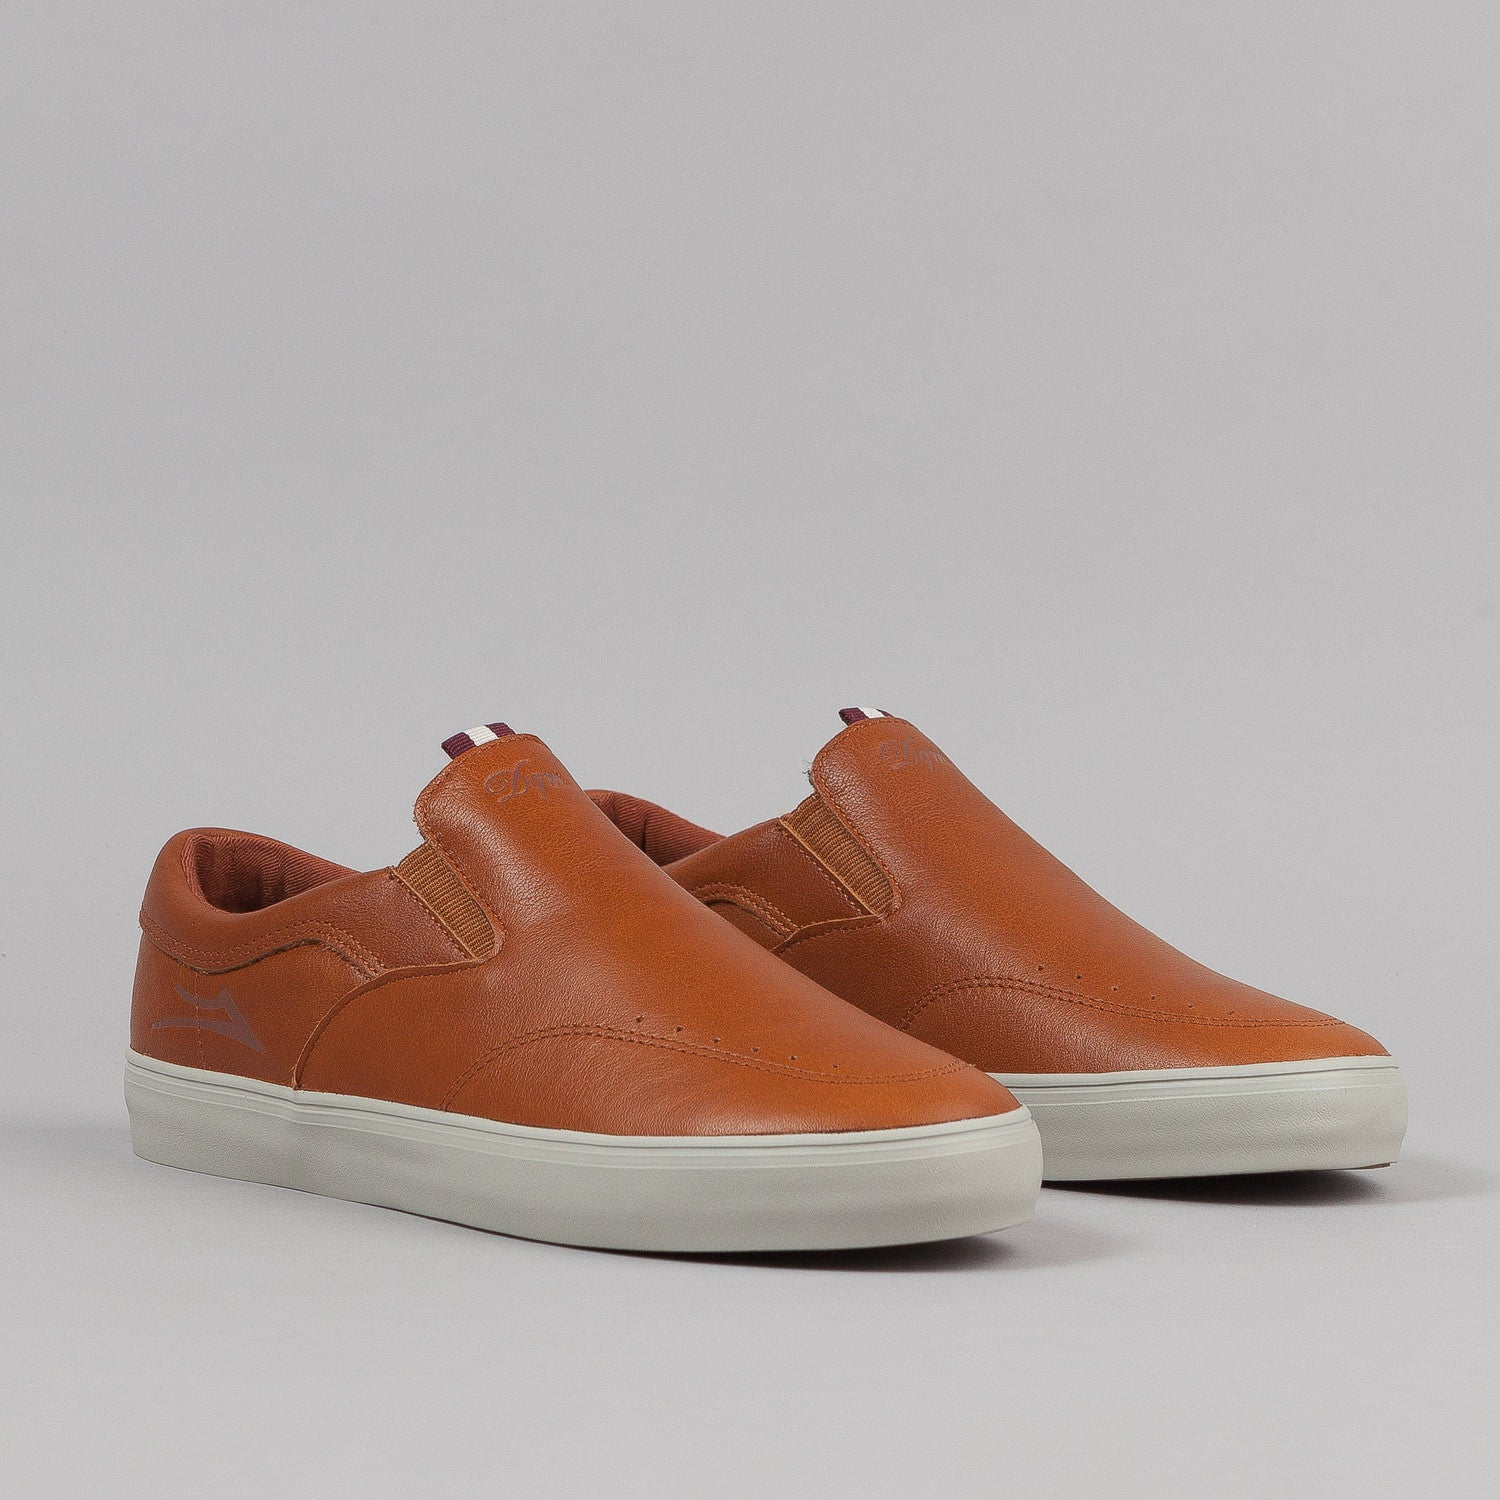 Lakai X DQM Owen Echelon Shoes - Golden Brown Leather